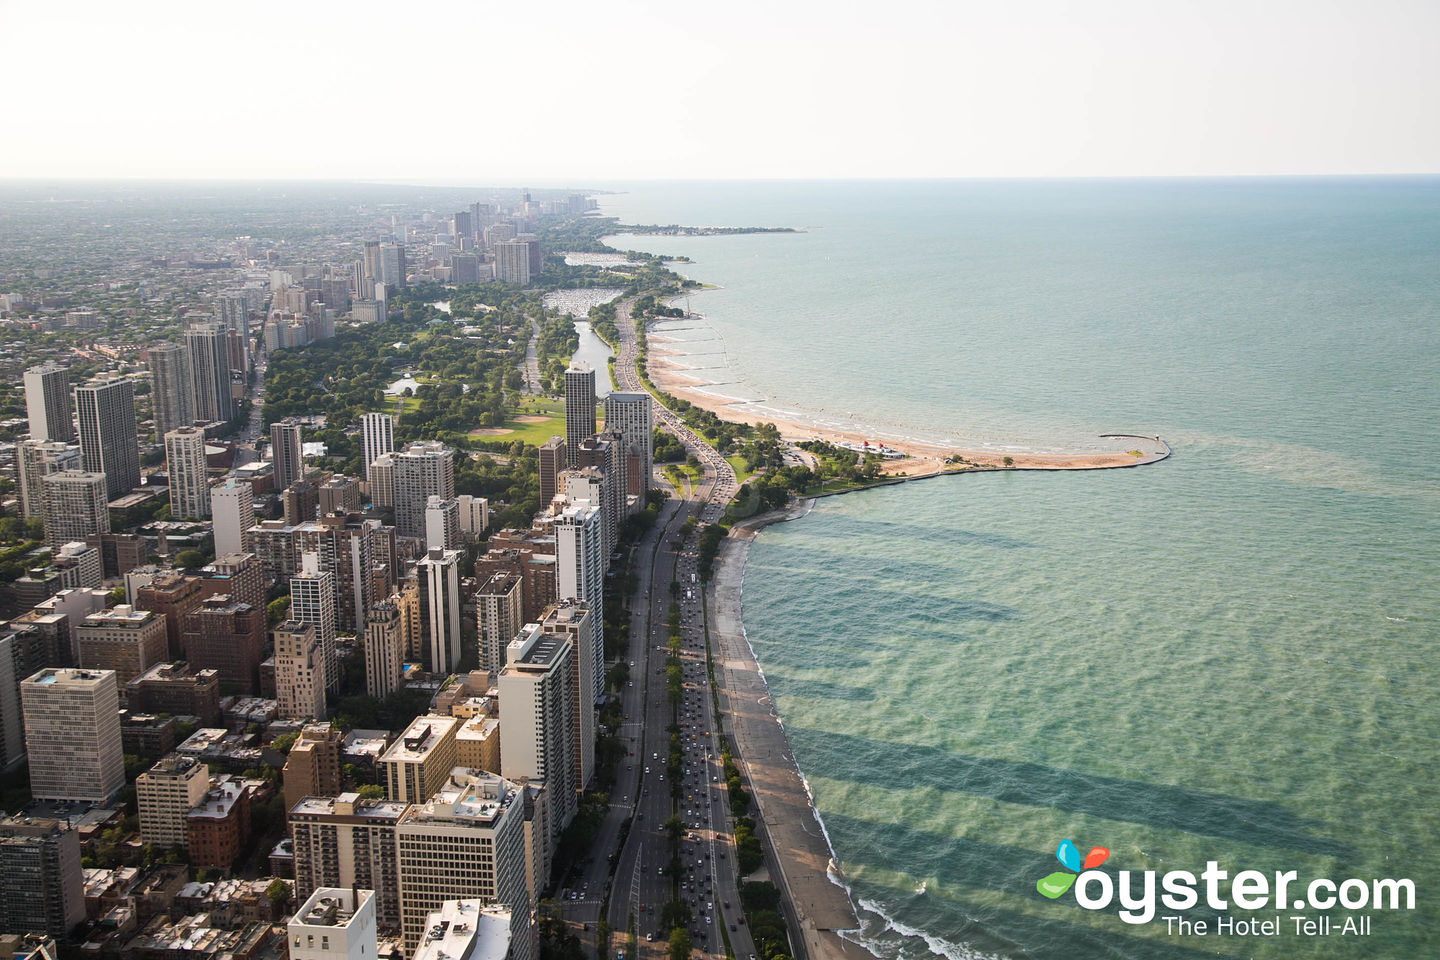 Chicago, Illinois/Oyster